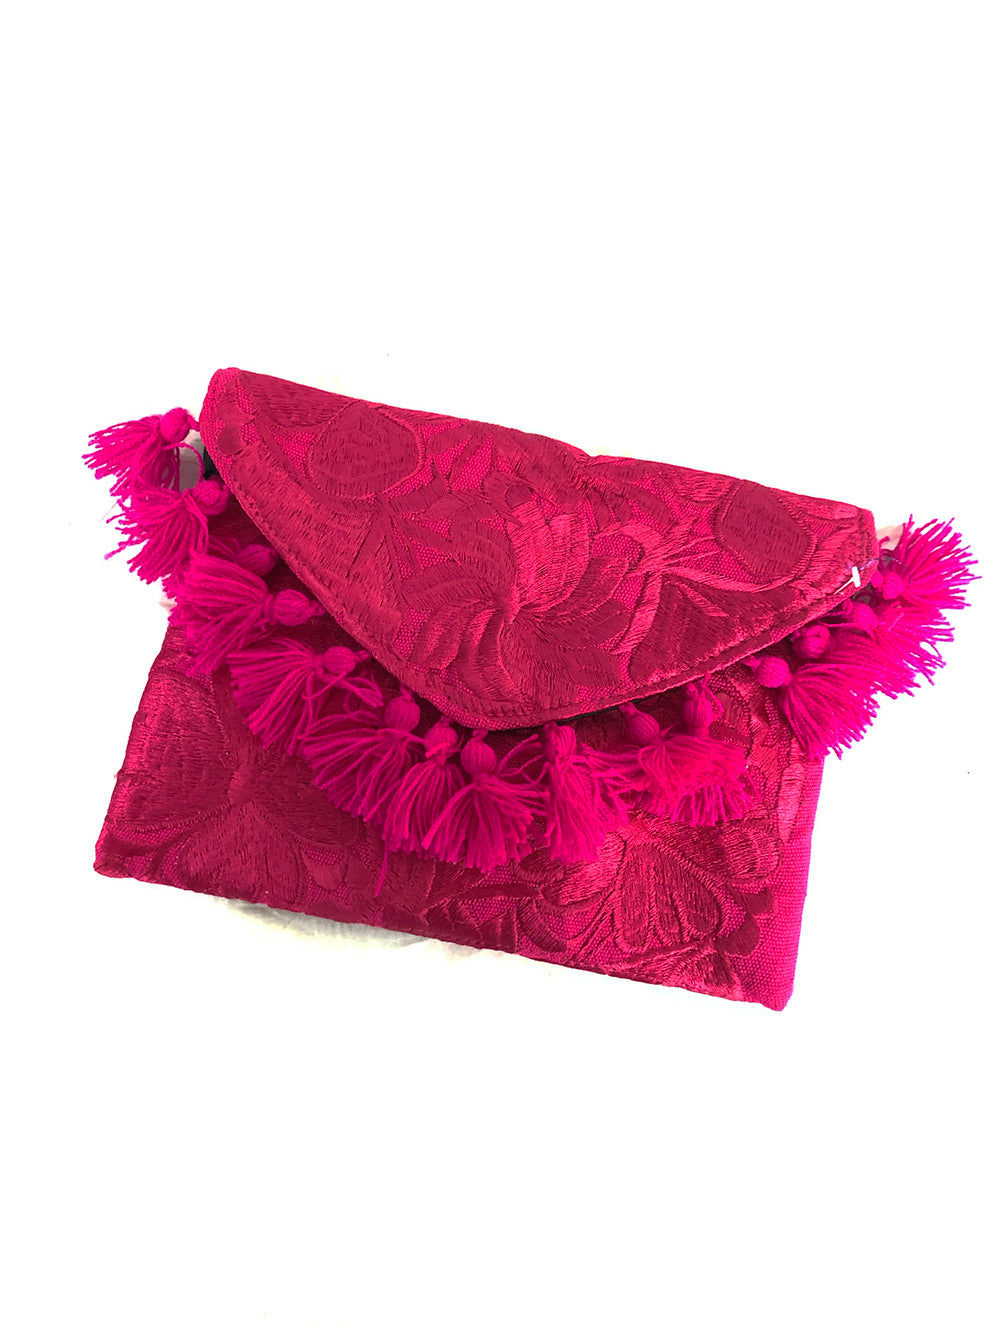 Embroidered Clutch Chiapas